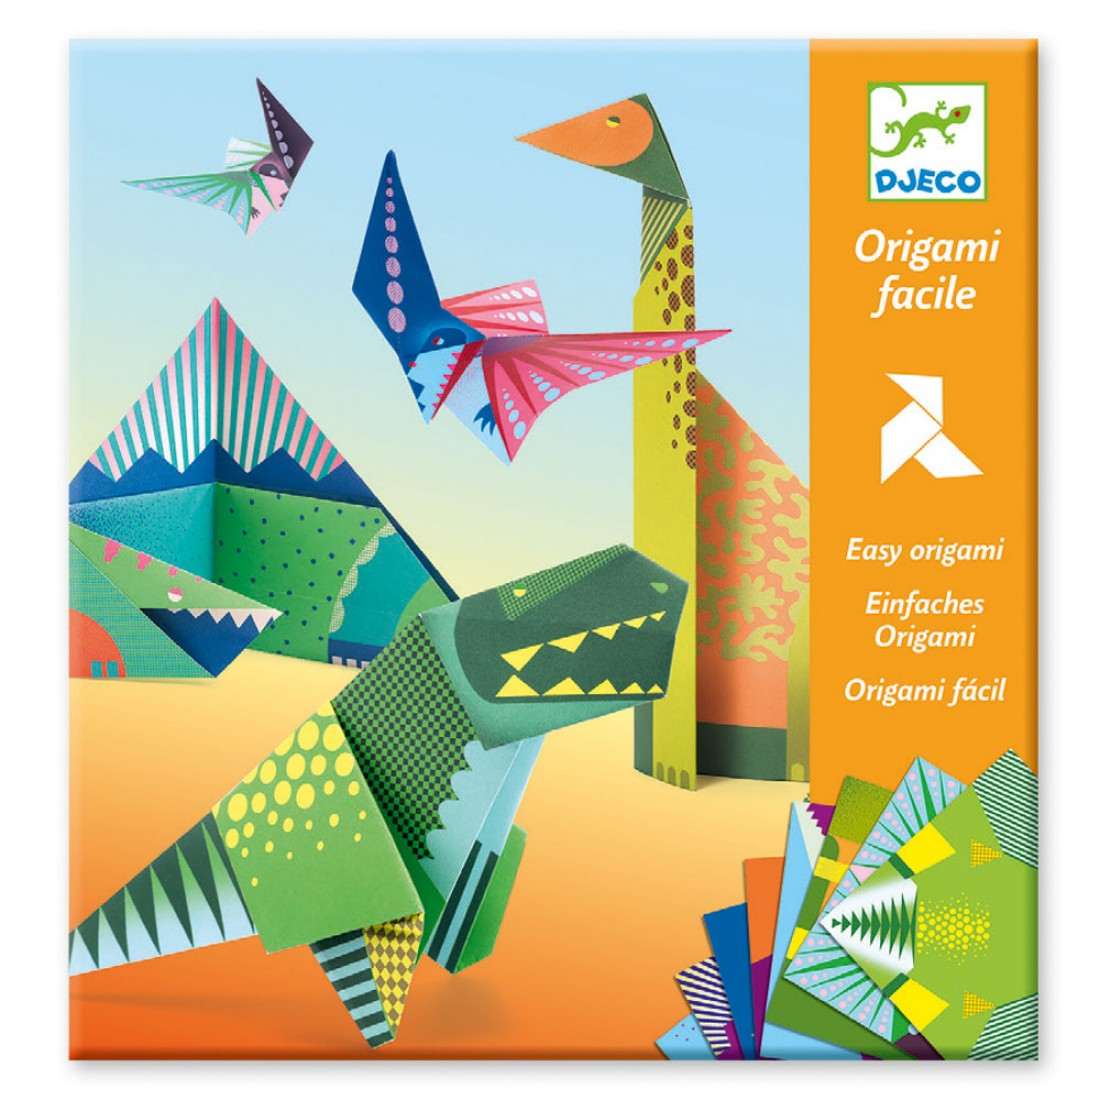 Small gifts - Origami - Dinosaurs